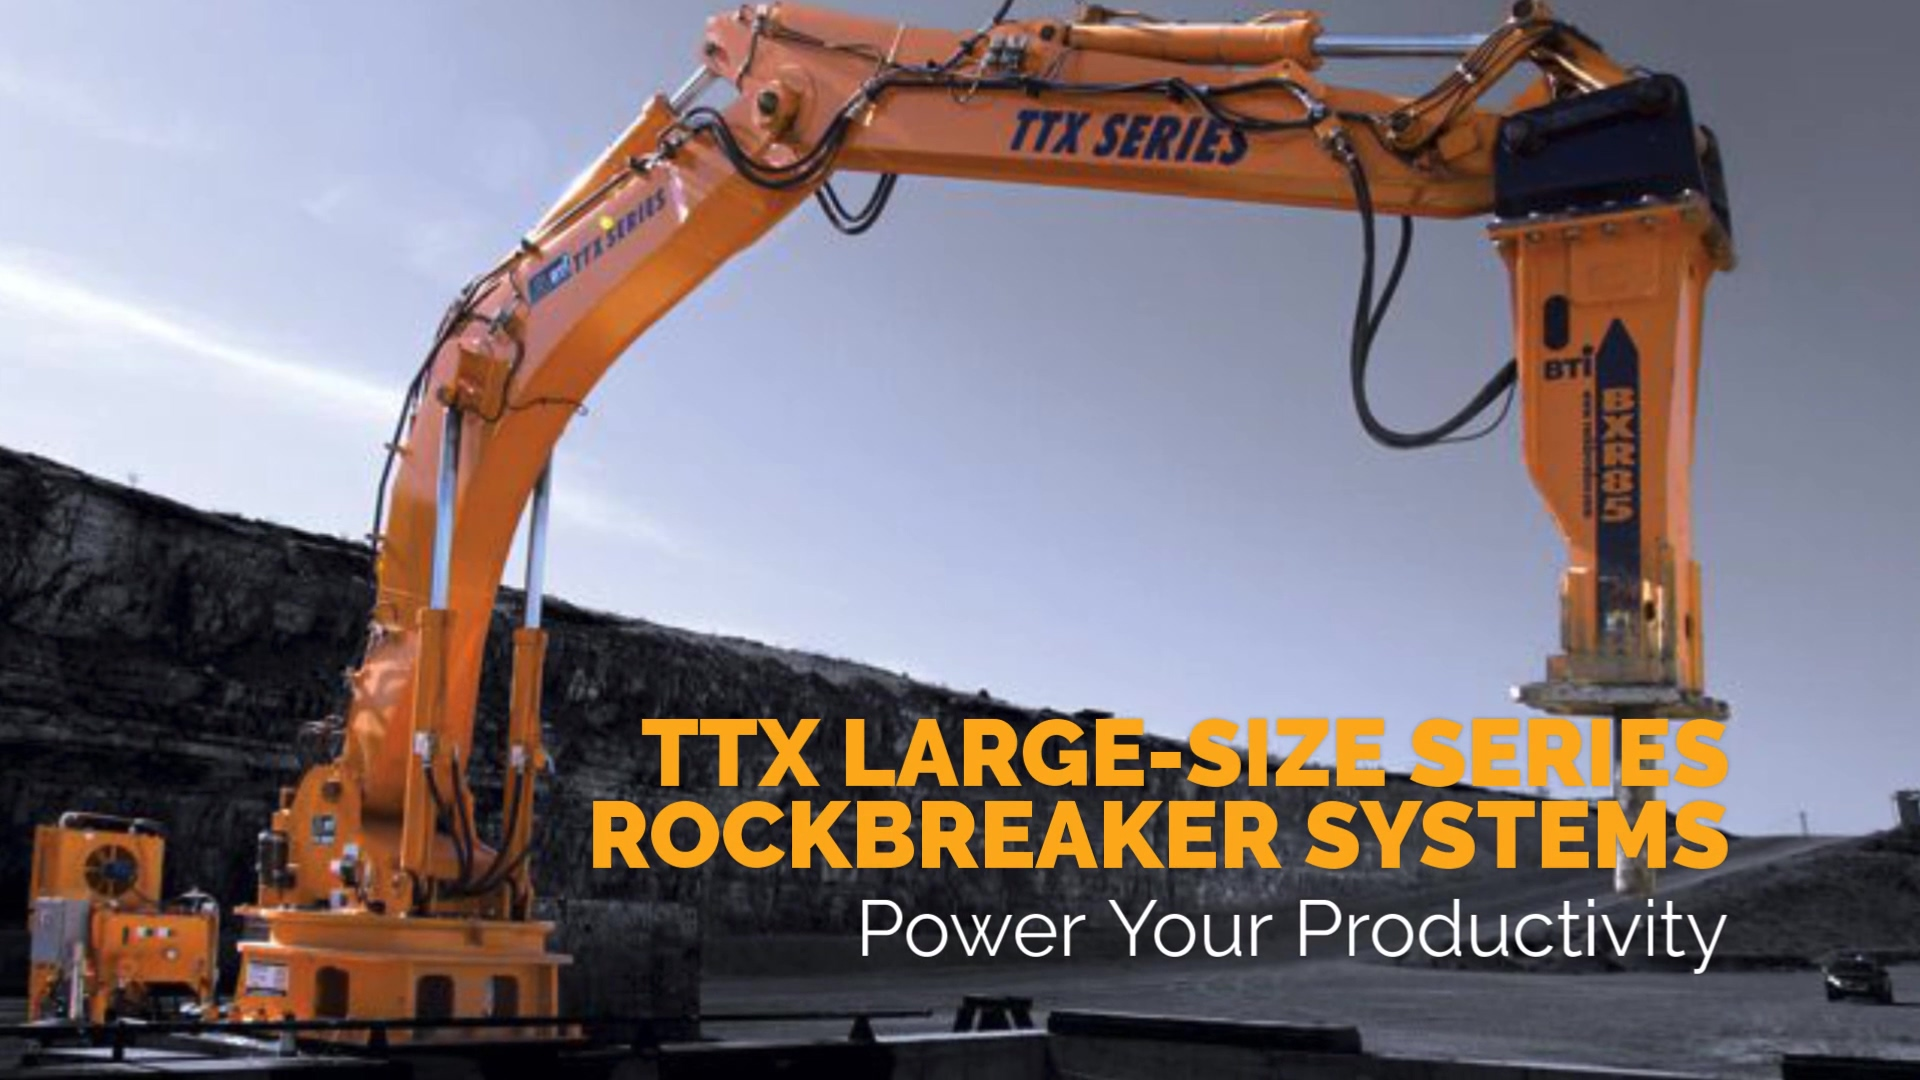 Breaker_Technology__TTX_Large-Size_Series_Rockbreaker_System_Power_Your_Productivity_1080p